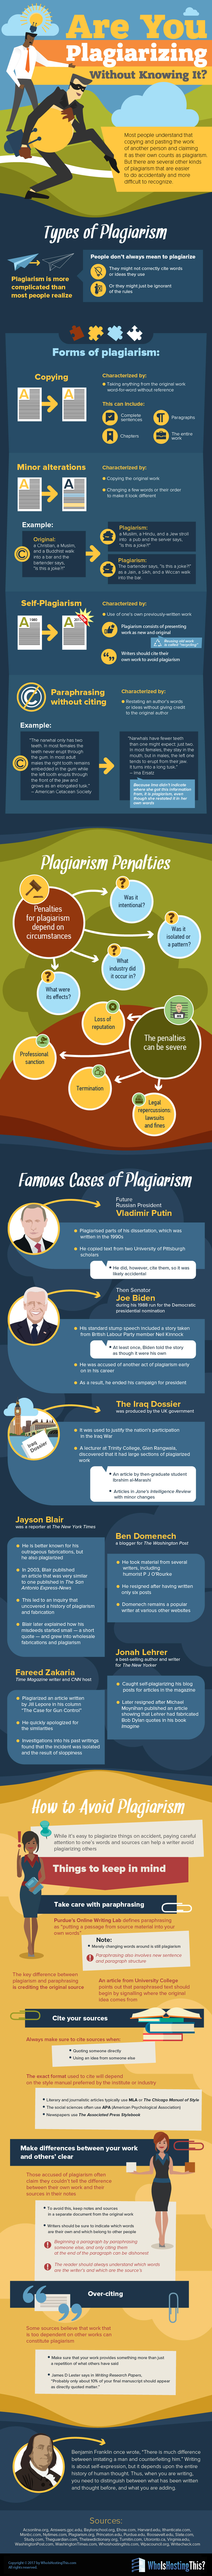 The Crimes of Copy-Paste: Do You Know When You're Plagiarizing Content? - Infographic